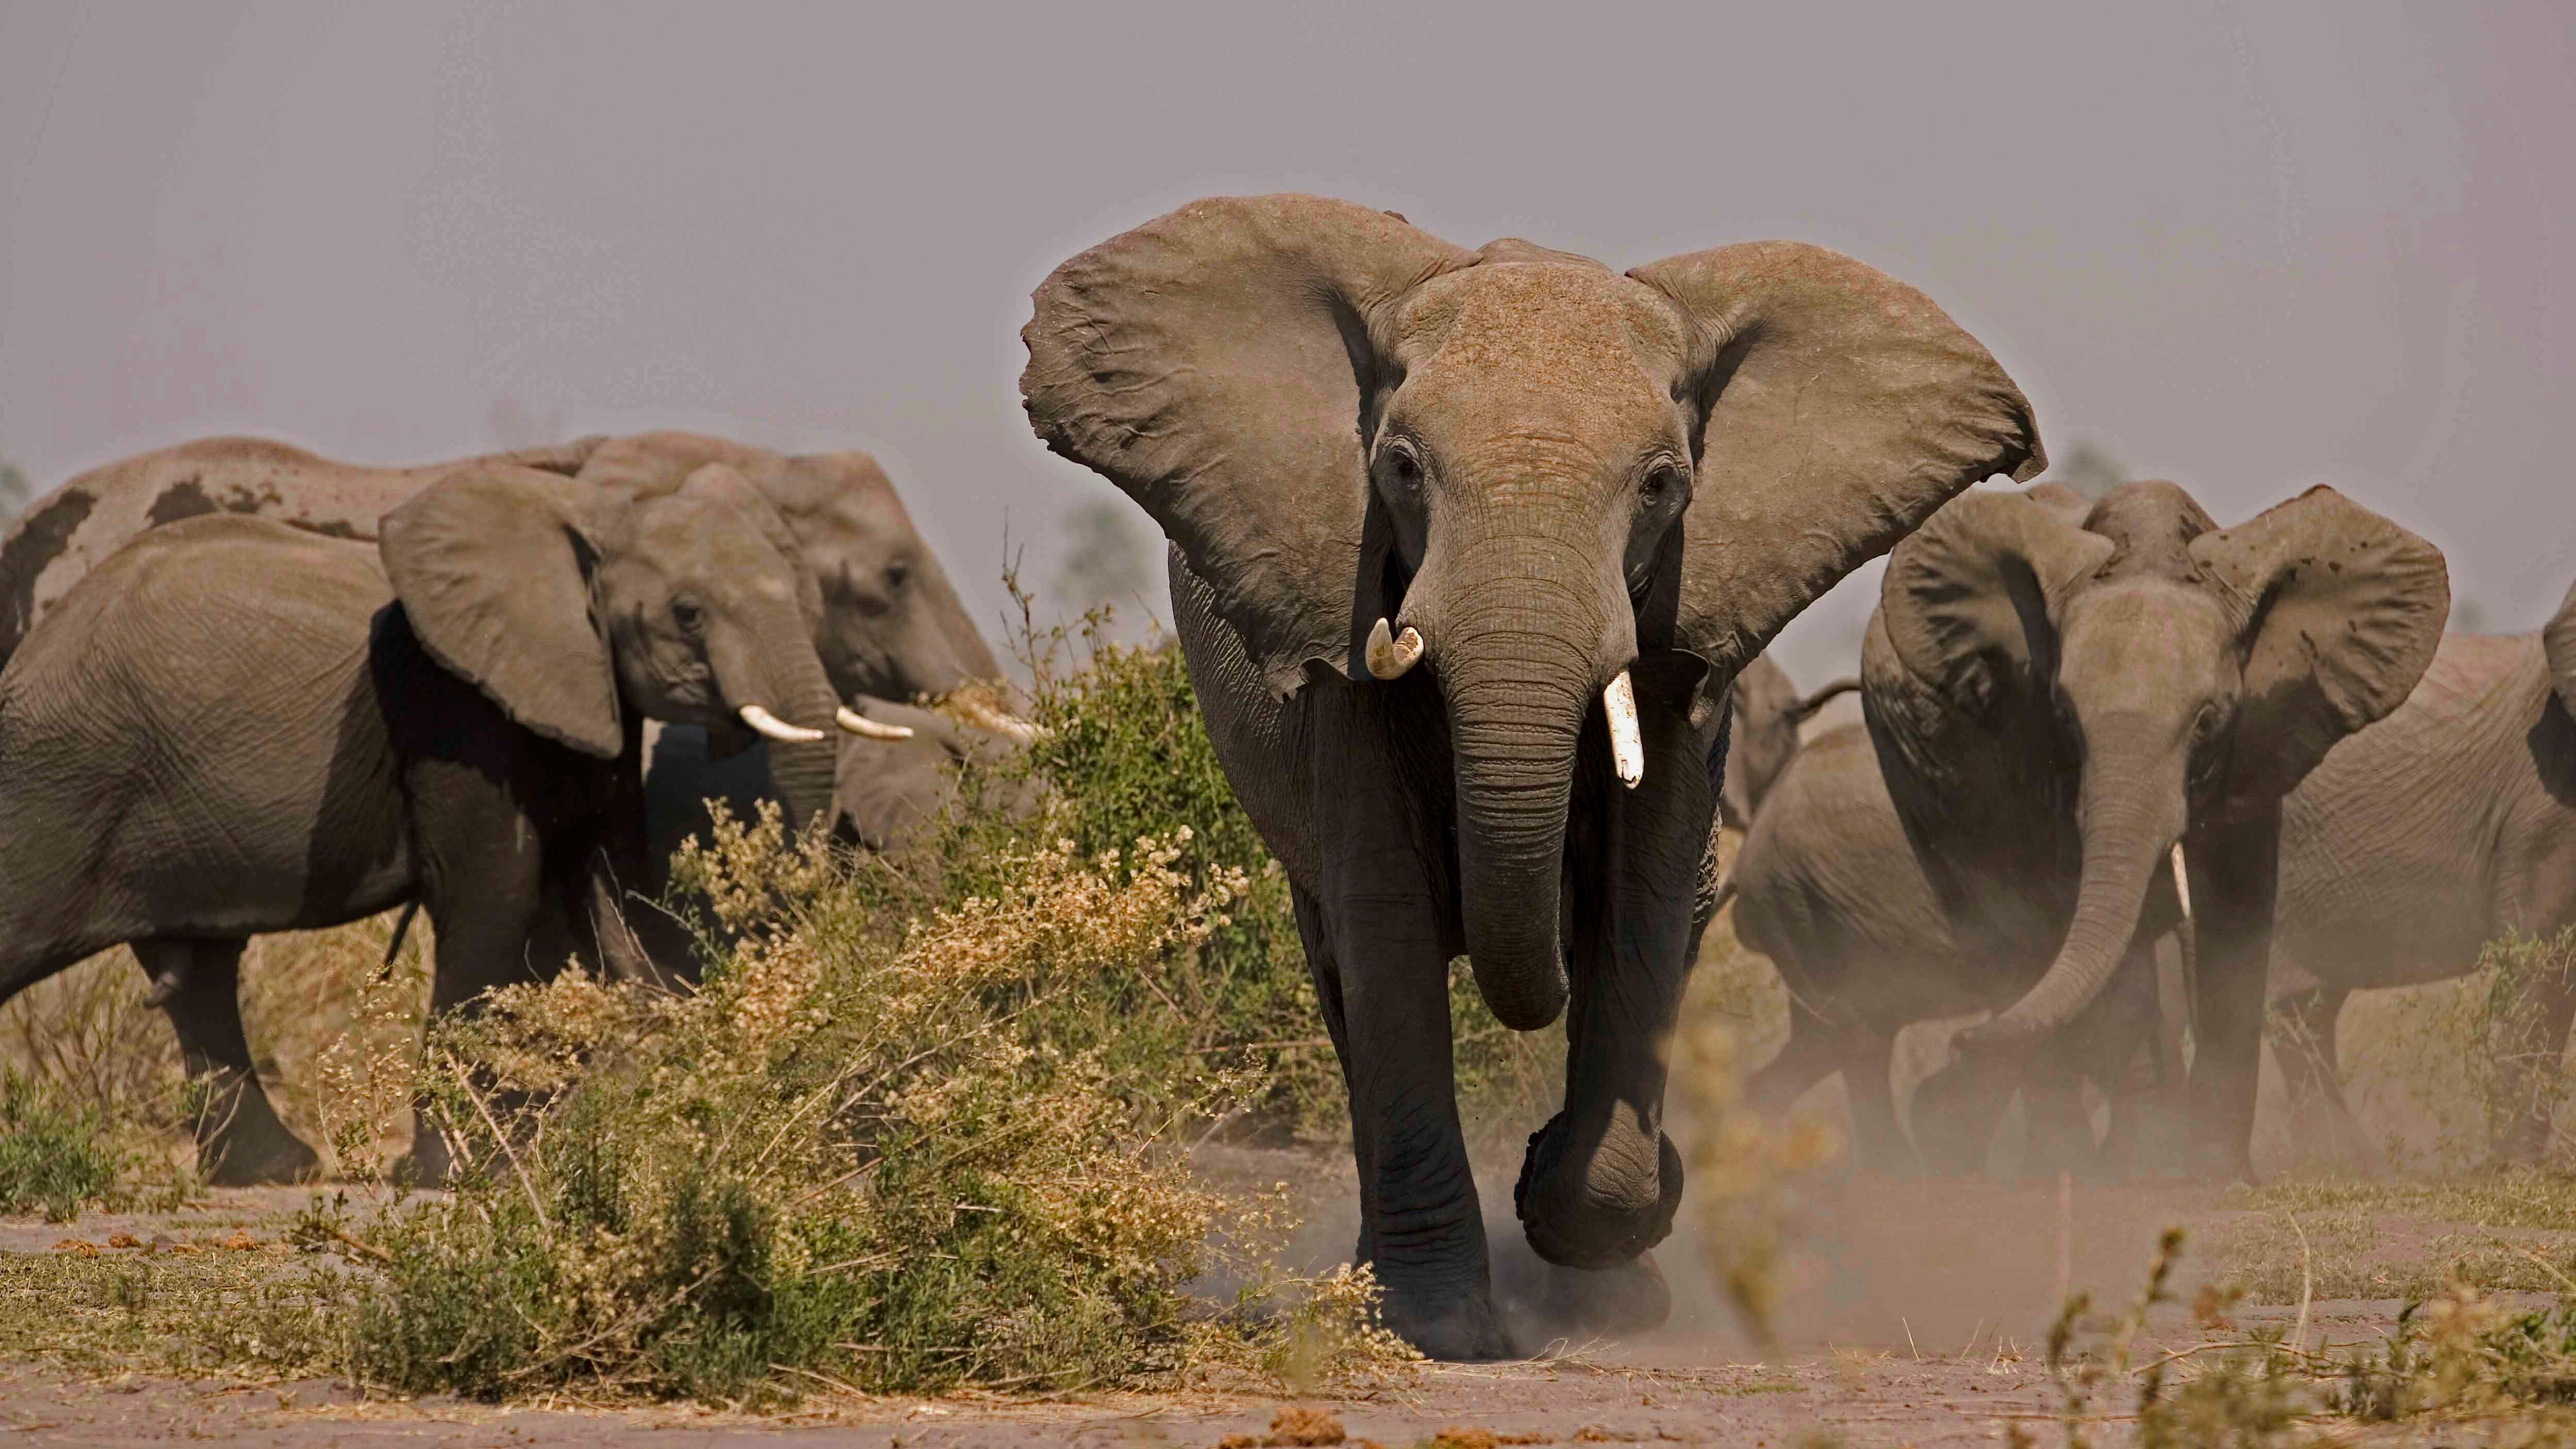 Watch full episodes online of nature on pbs - Image elephant ...